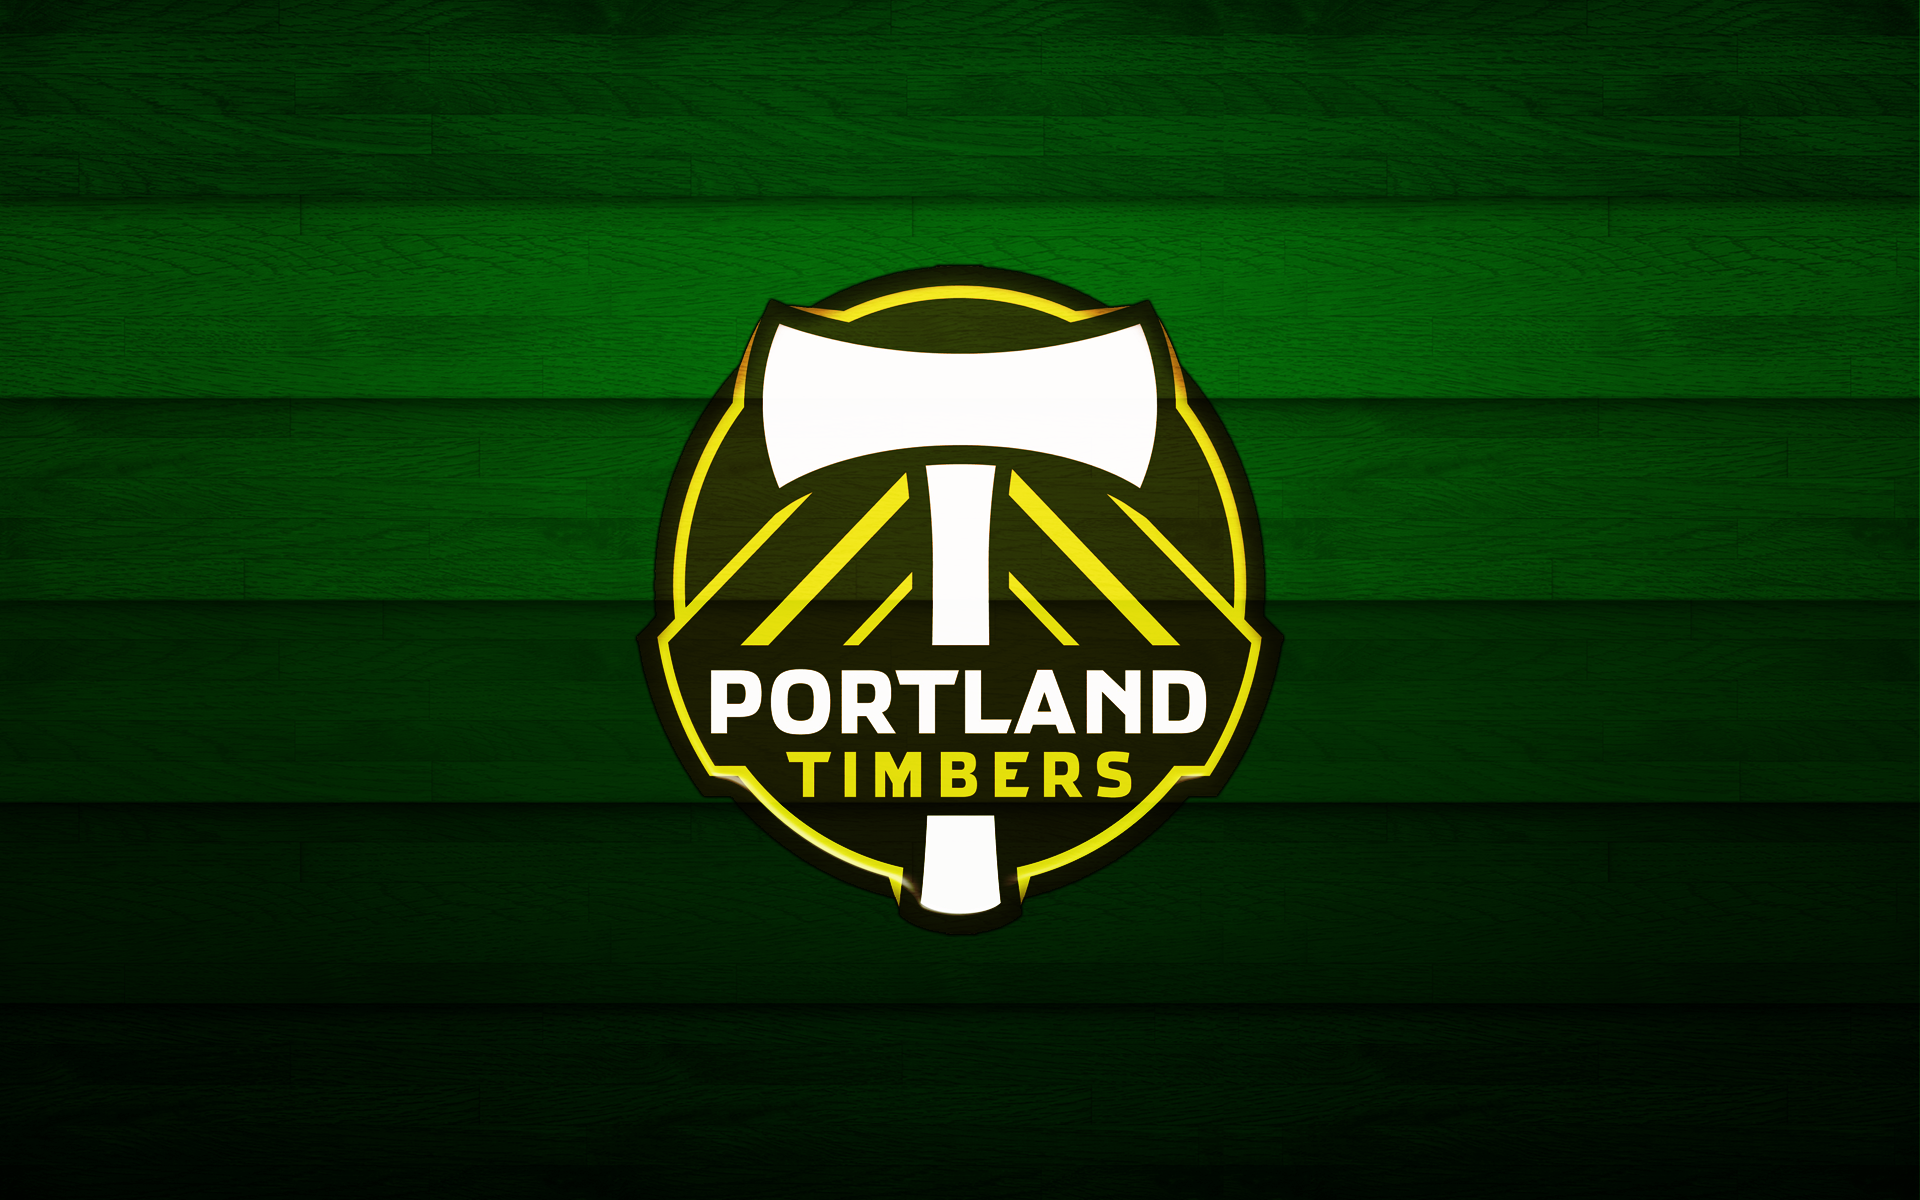 1920x1200 - Portland Timbers Wallpapers 19